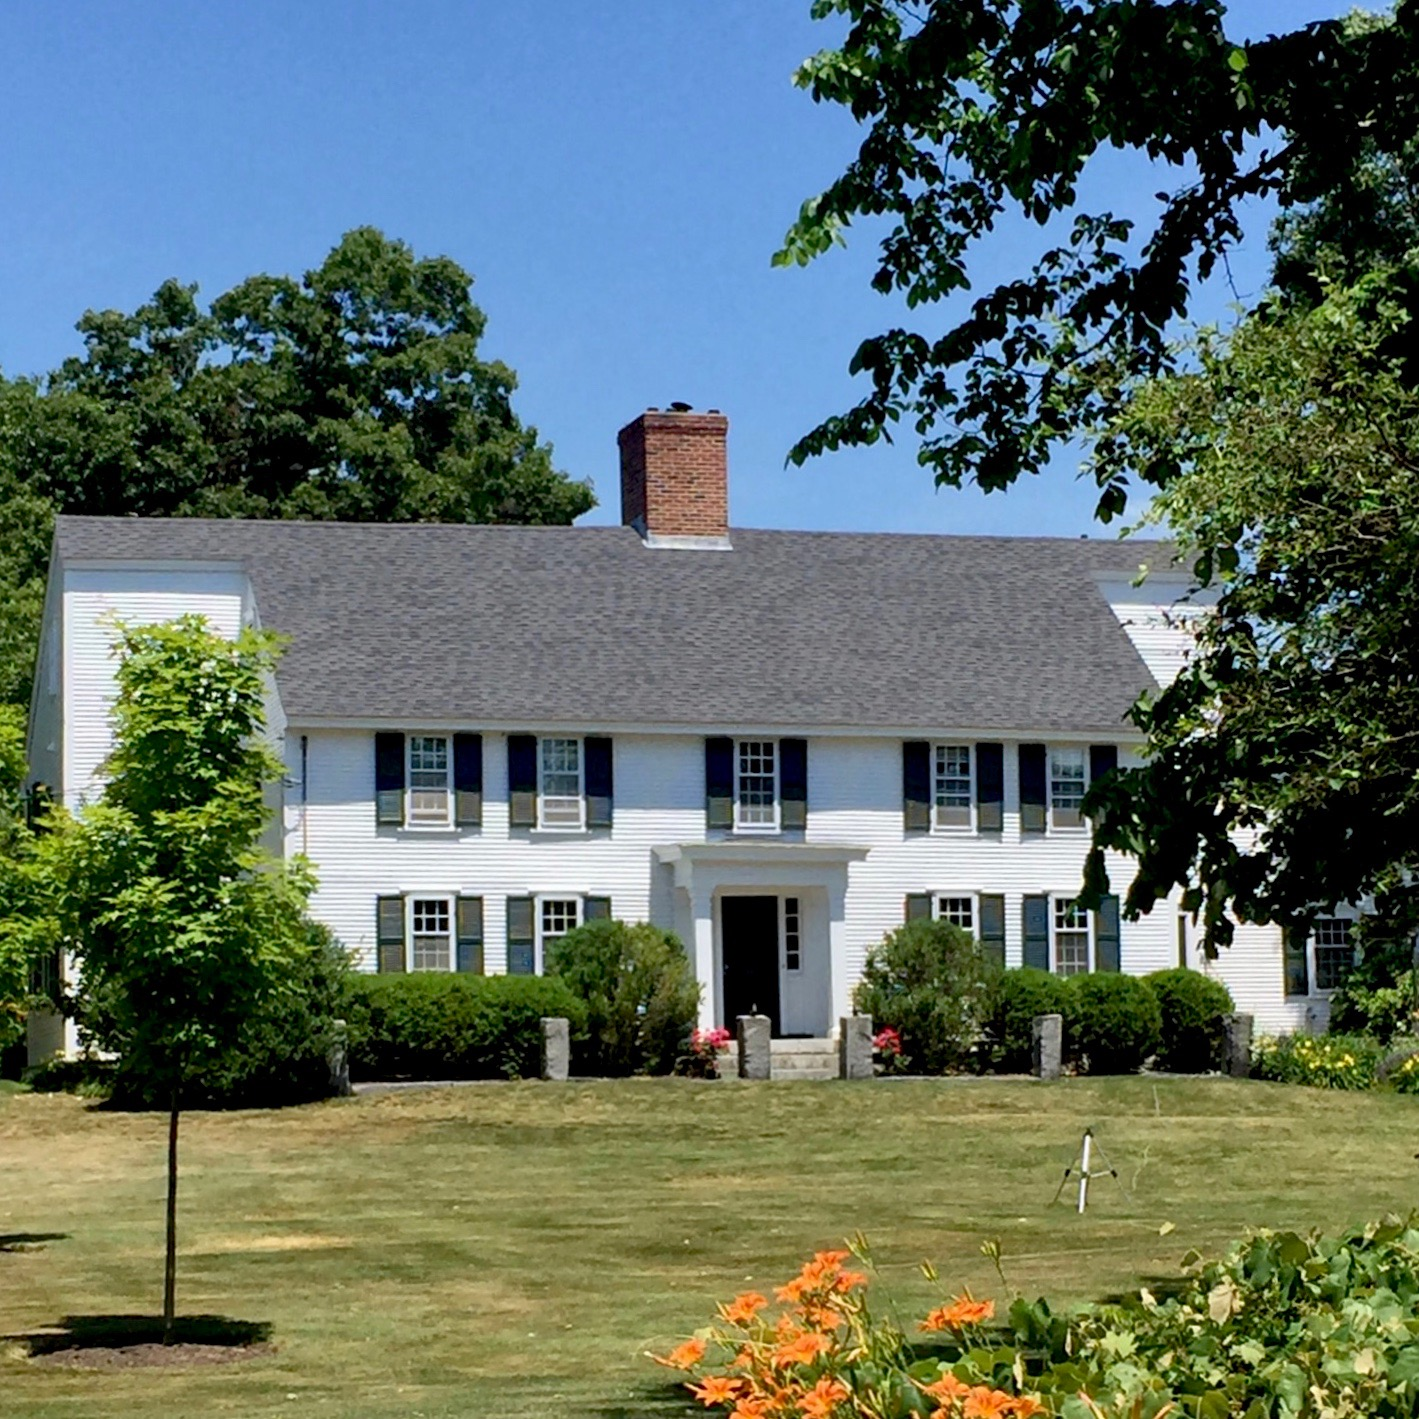 historic antique home in North Andover MA whtie home green shitters New England Style home.jpg